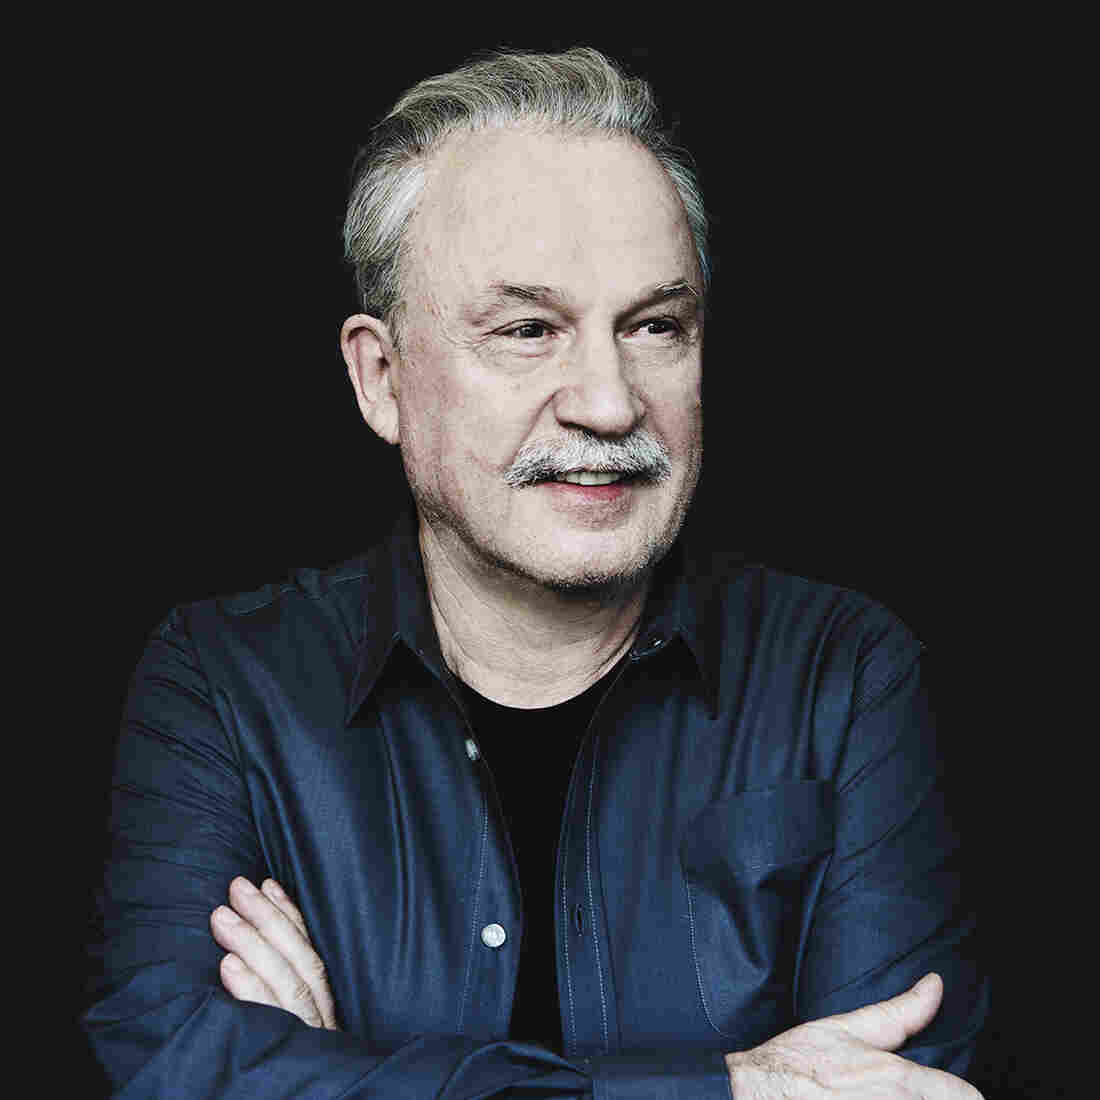 After 30 Years, Giorgio Moroder Returns To The Dance Floor